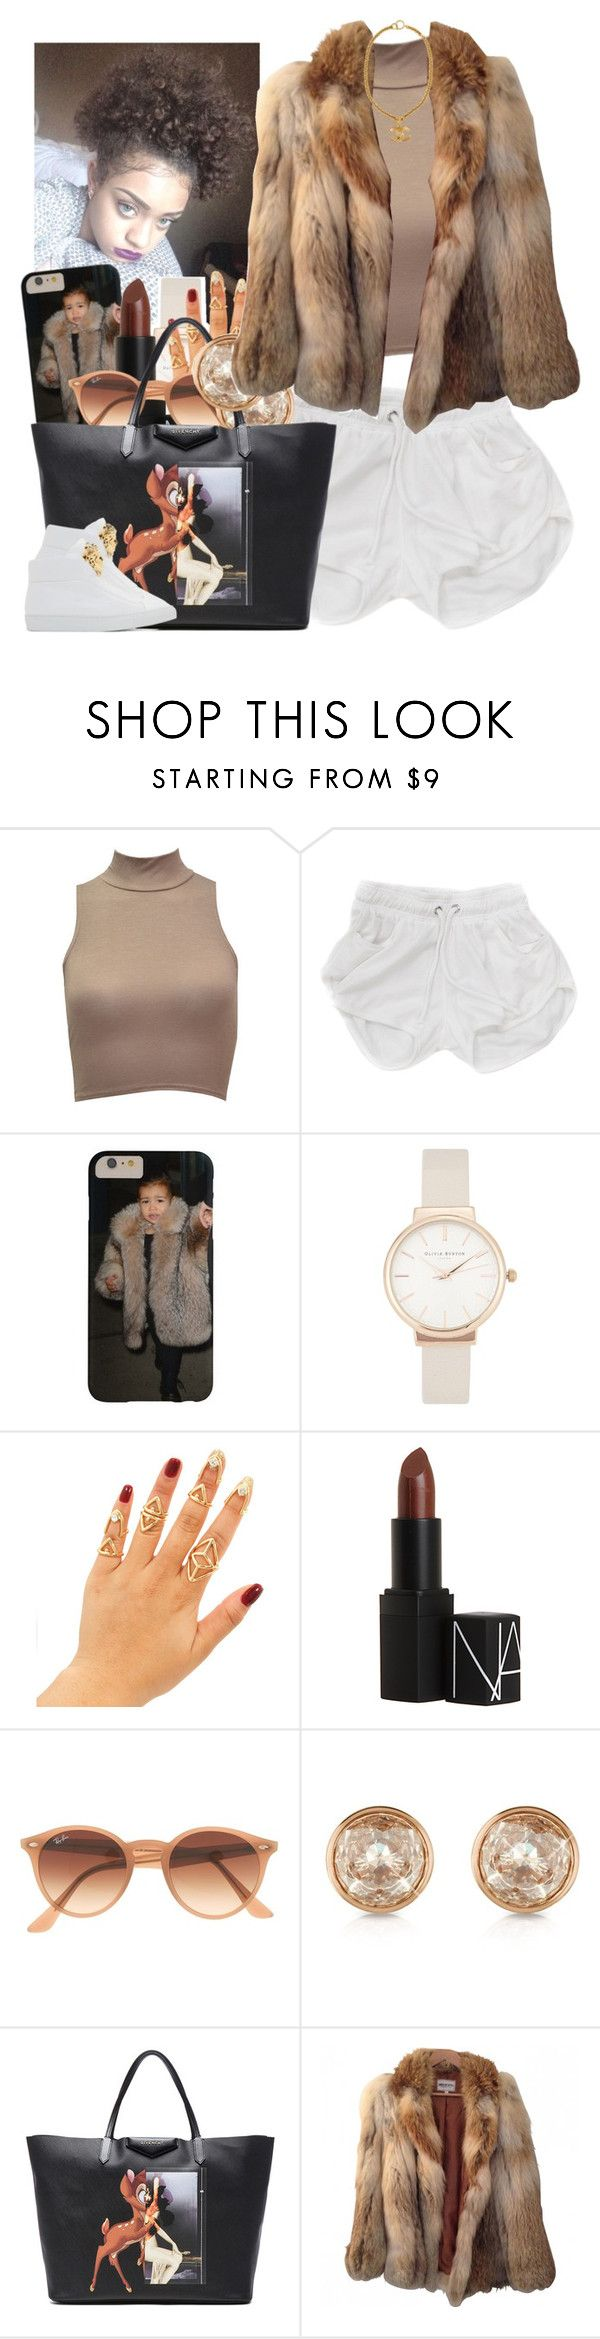 """""""✨"""" by newtrillvibes ❤ liked on Polyvore featuring Olivia Burton, NARS Cosmetics, Ray-Ban, Michael Kors, Givenchy, American Retro, Versace and Chanel"""